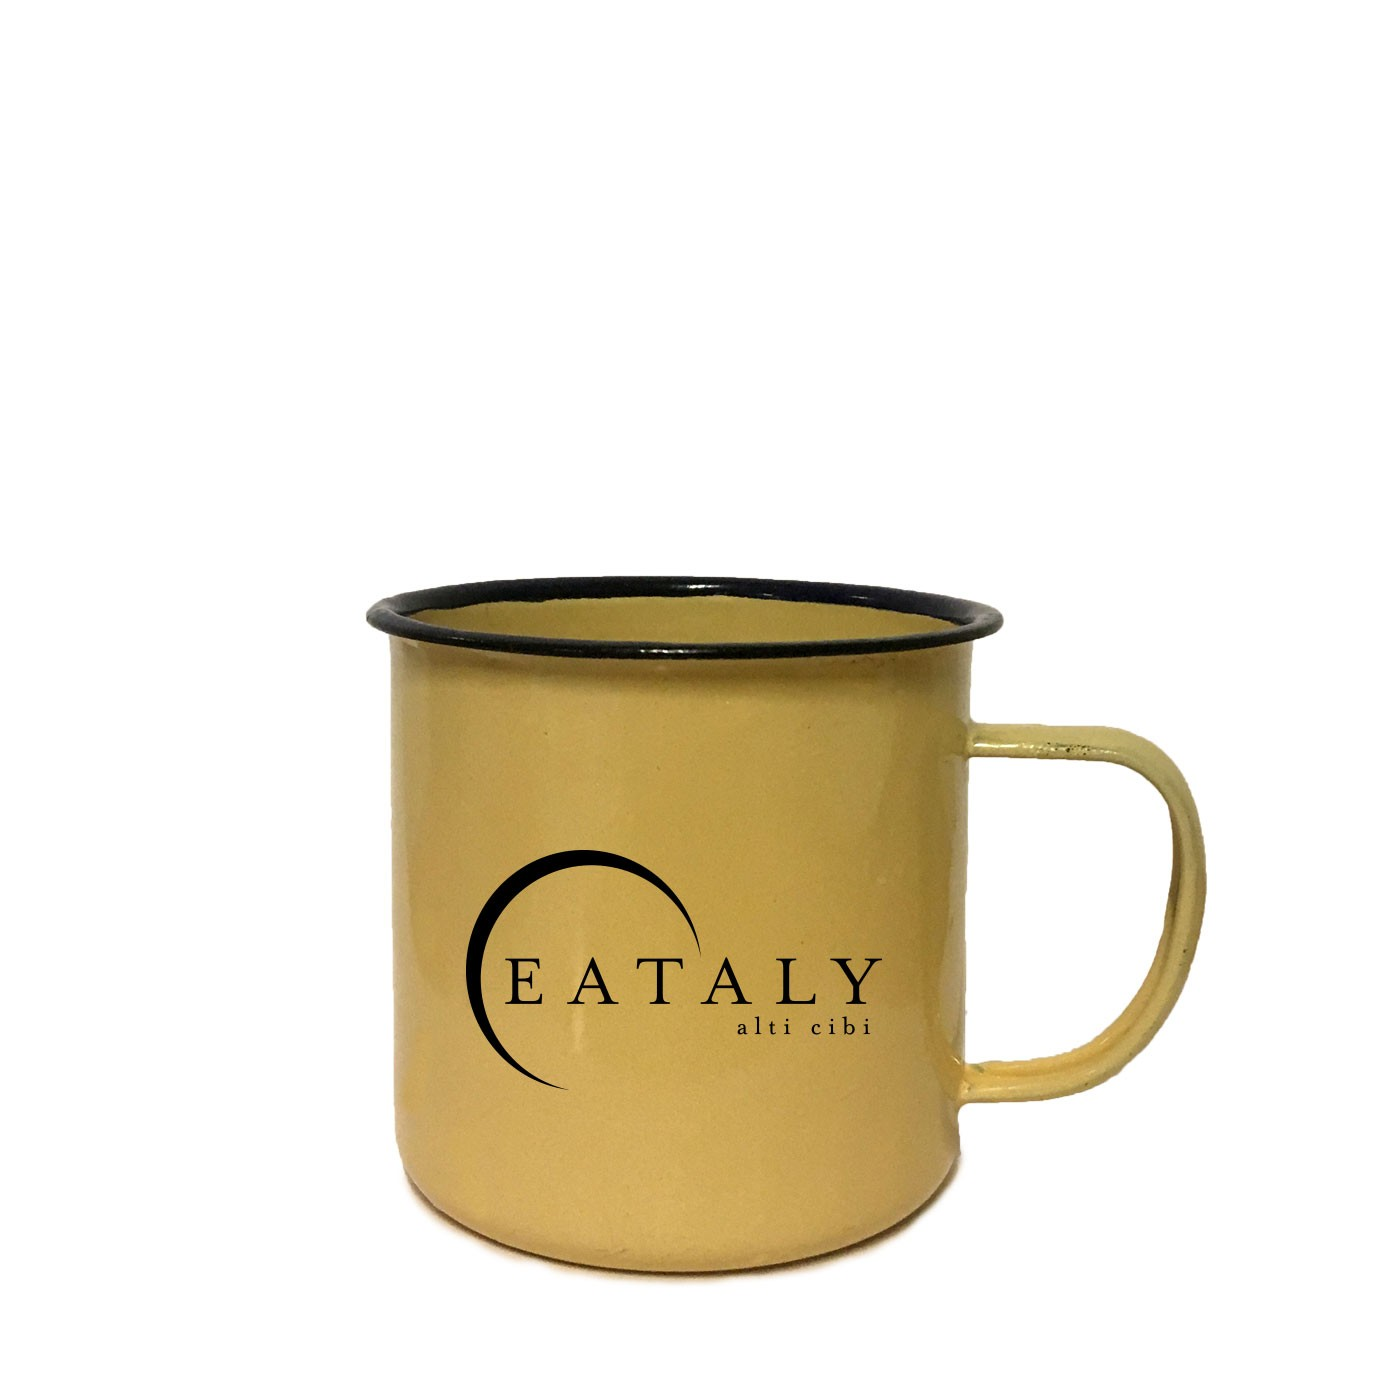 Cream Eataly Mug